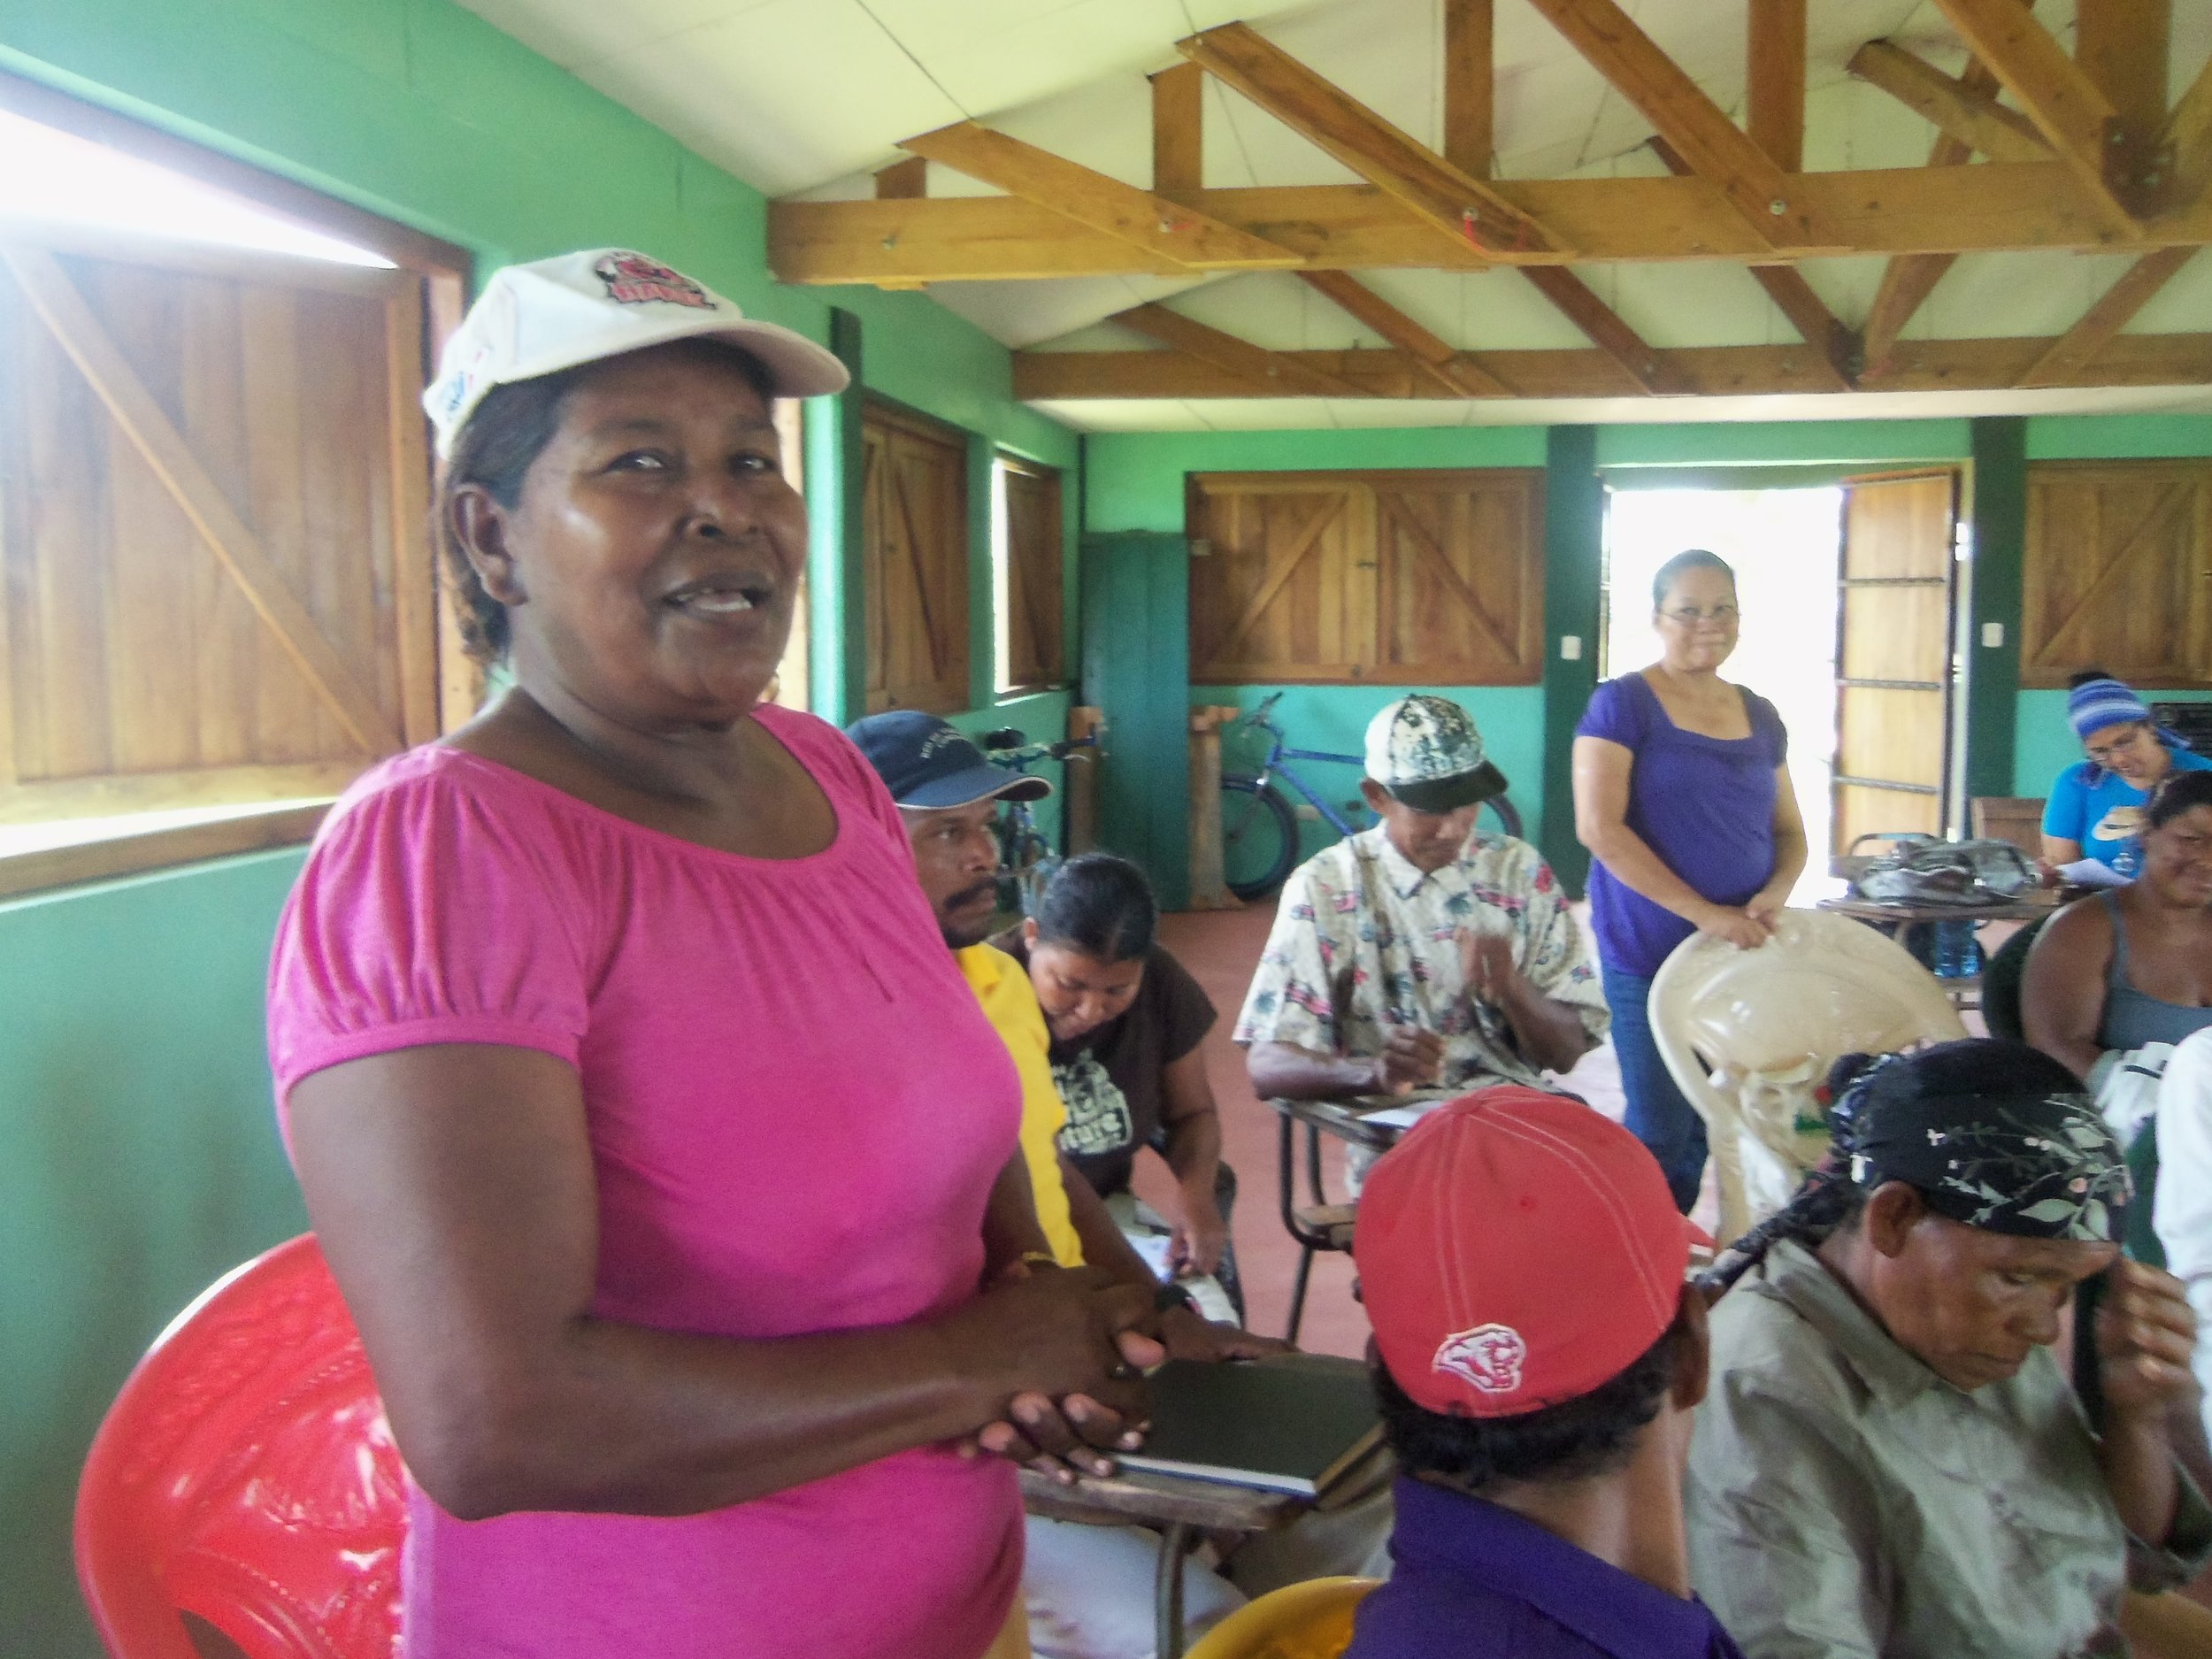 AMICA trains Indigenous Miskitu women to be community promoters so they can share information women's rights, including the right to a life free of violence.